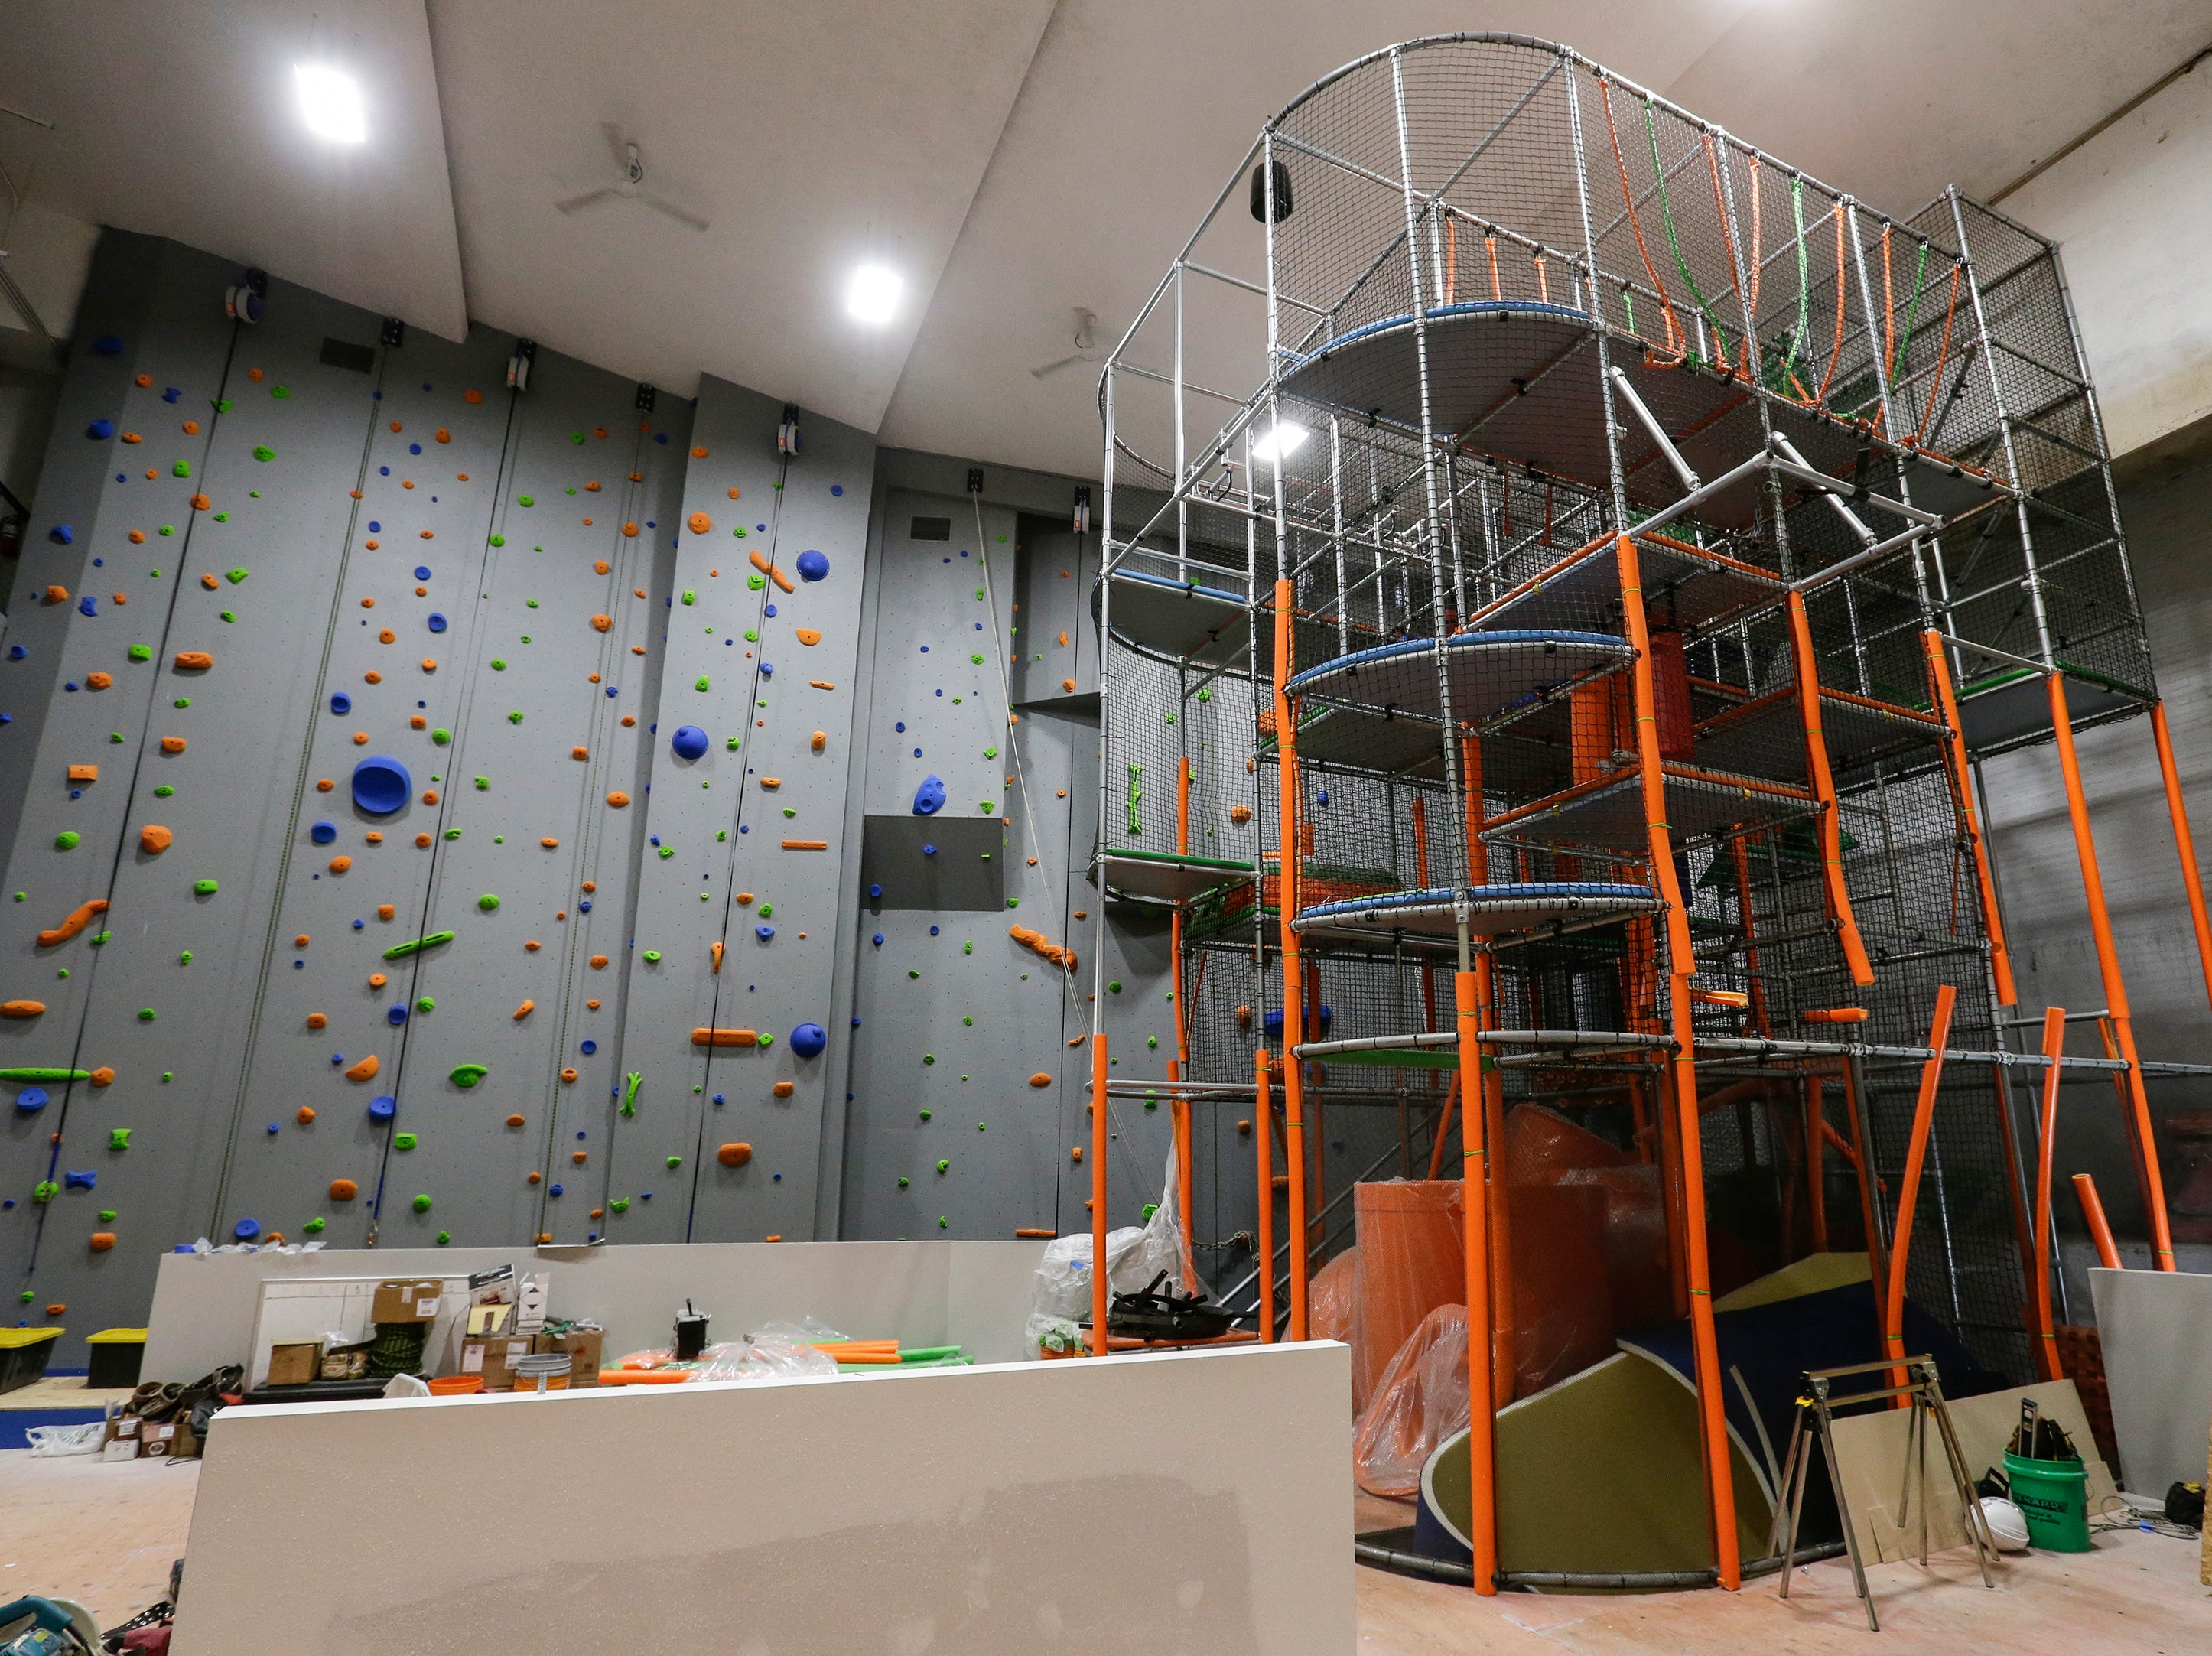 The climbing wall and jungle gym area at Strand Adventures Wednesday, May 1, 2019, in Manitowoc, Wis. Joshua Clark/USA TODAY NETWORK-Wisconsin